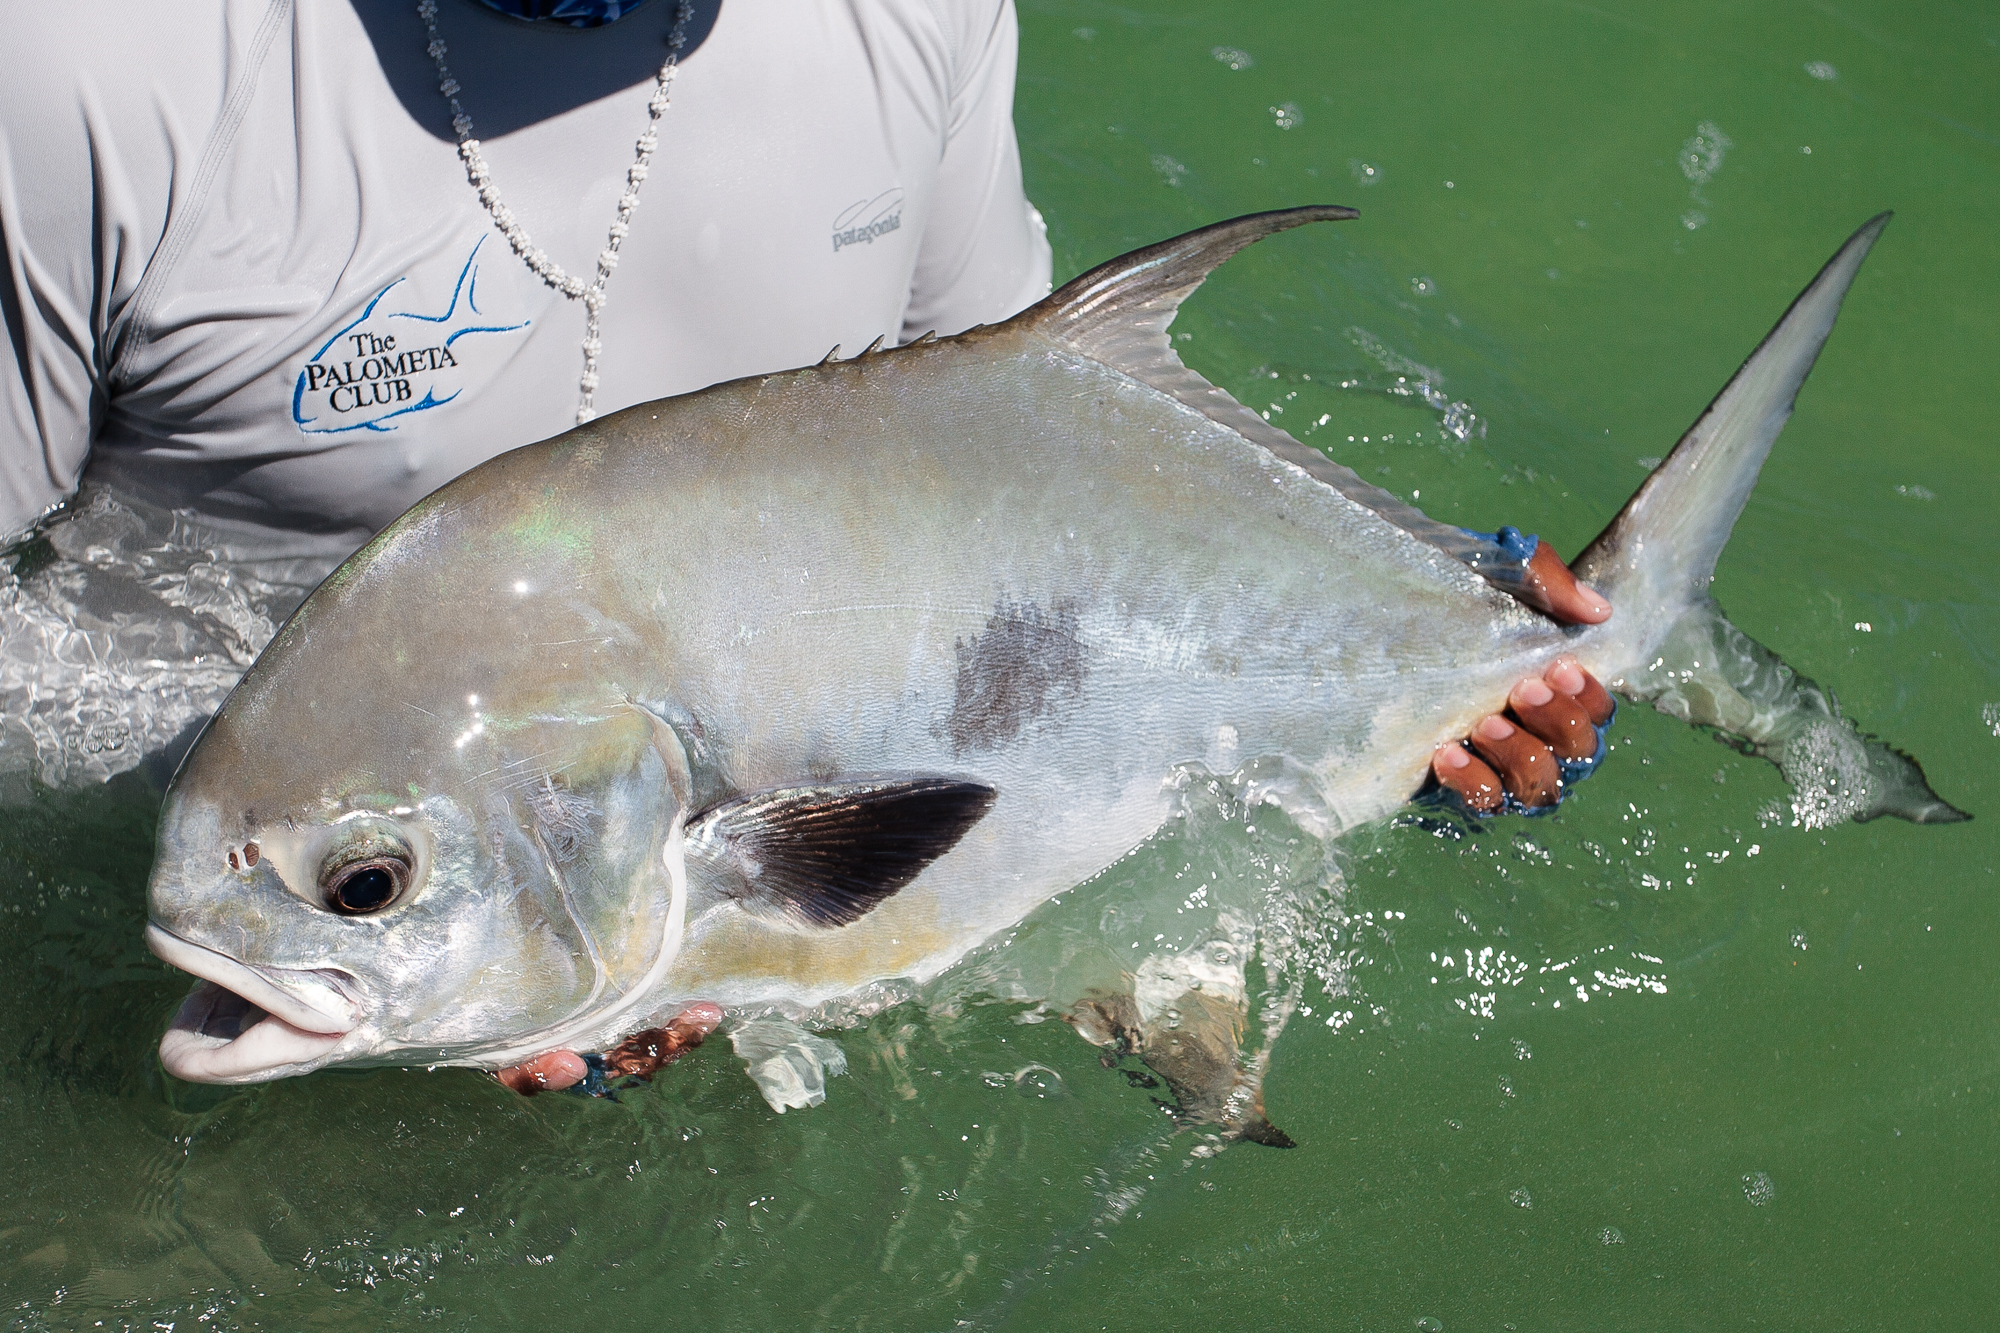 (2/3) When the conditions on the bay are typical, shots at permit can be plentiful. With the early morning hex broken by a successful foot chase, the shots keep coming, a mere fraction of which are properly taken advantage of. In all, four permit find their way to the boat for tagging, with shots at many more blown along the way (photo: Chad Shmukler).